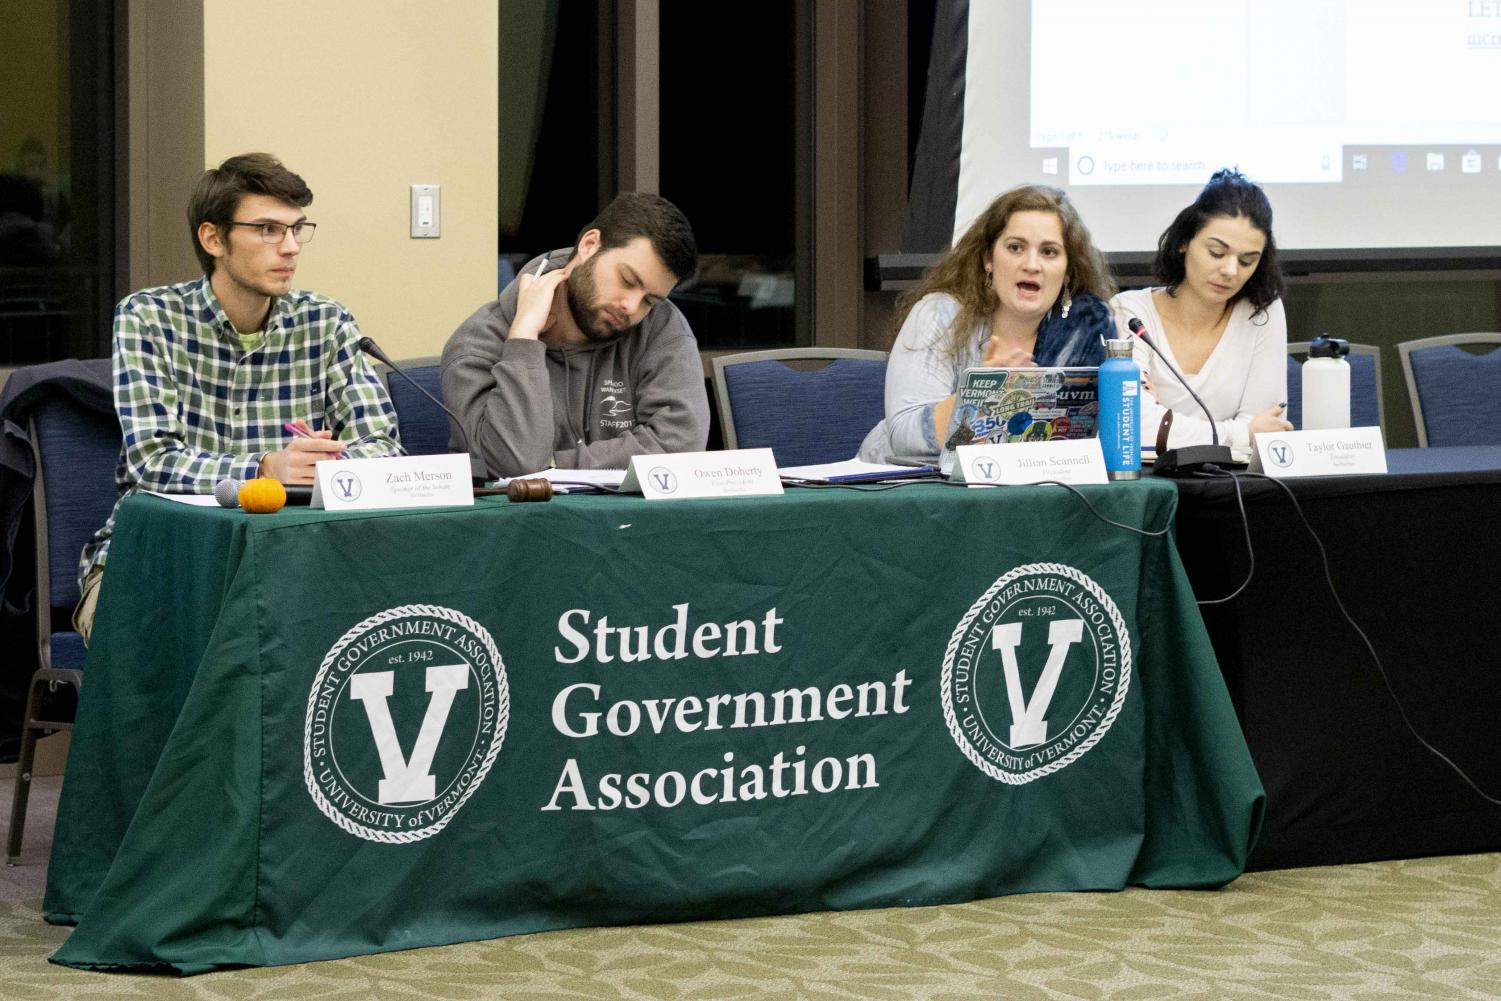 (Left to Right) Speaker of the Senate Zach Merson, SGA Vice President Owen Doherty, SGA President Jillian Scannell and SGA Treasurer Taylor Gauthier sit at a table during a weekly SGA meeting, Nov. 5. The meeting discussed the use of unauthorized payment apps such as Venmo.